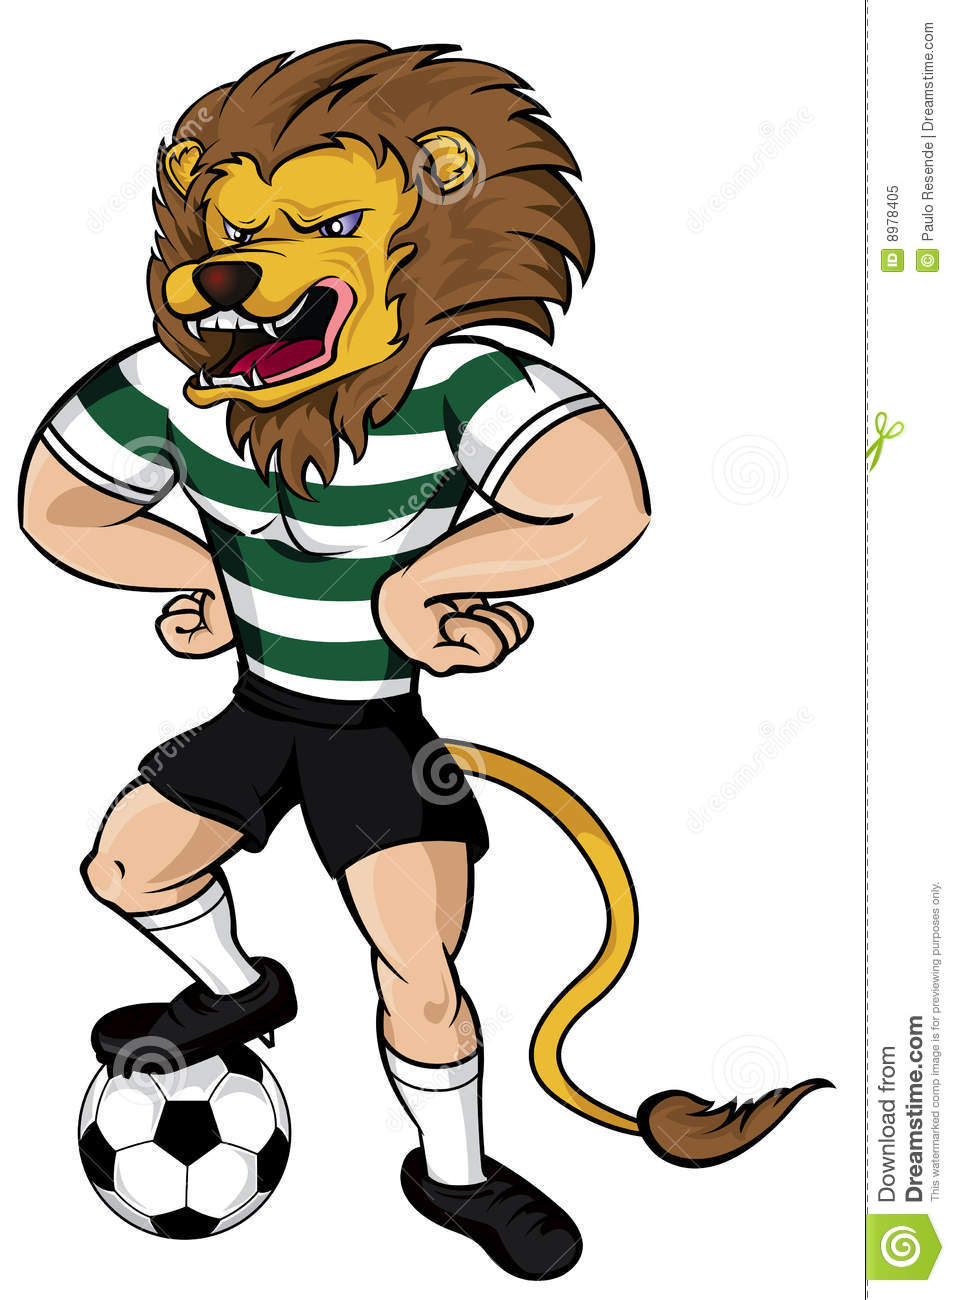 Soccer Lion Mascot Royalty Free Stock Photo Image 8978405